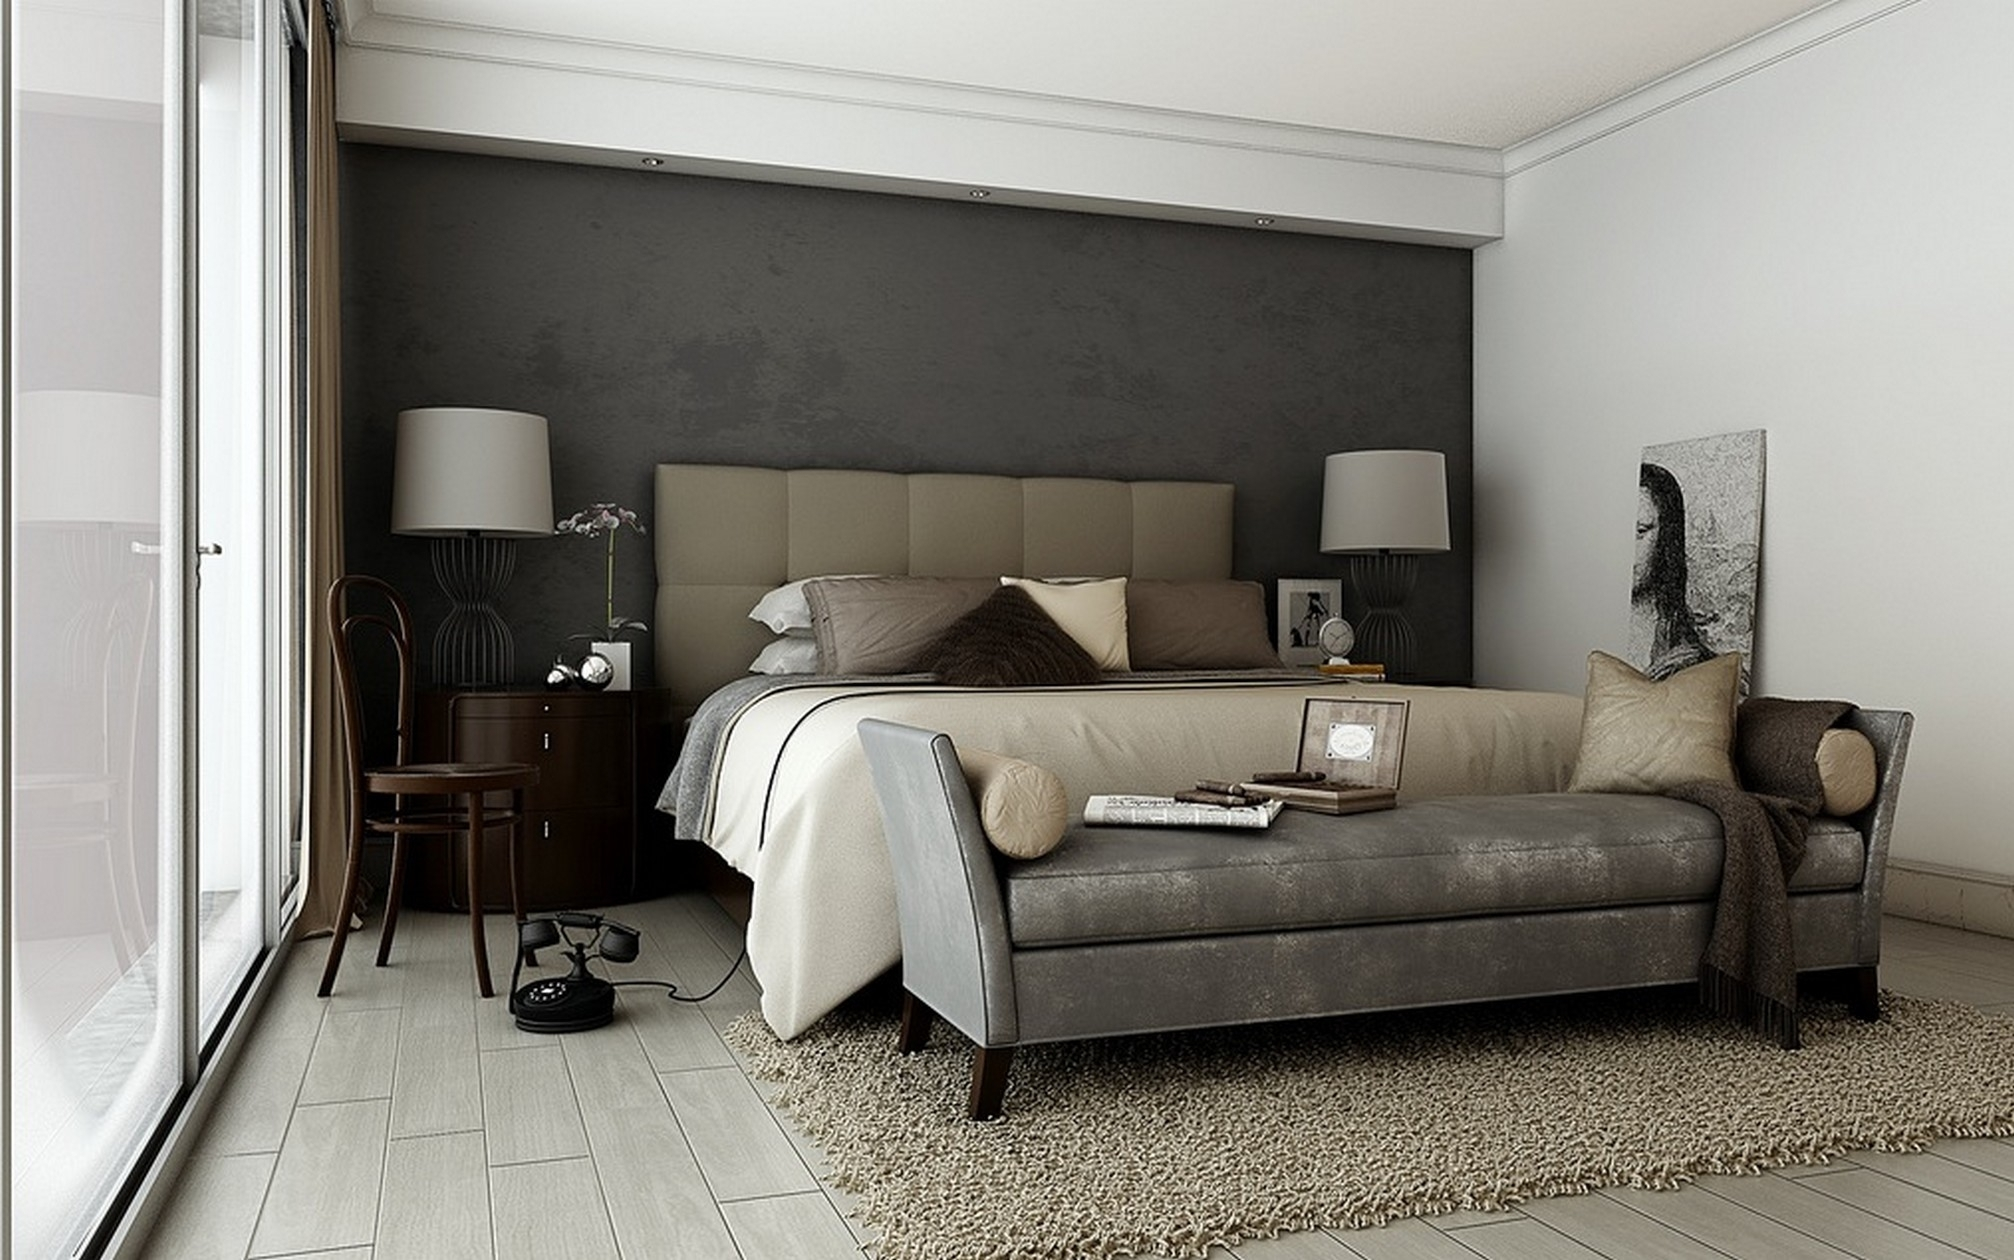 Grey Bedroom Walls With Color Accents | Dzqxh For Recent Wall Accents For Grey Room (View 12 of 15)